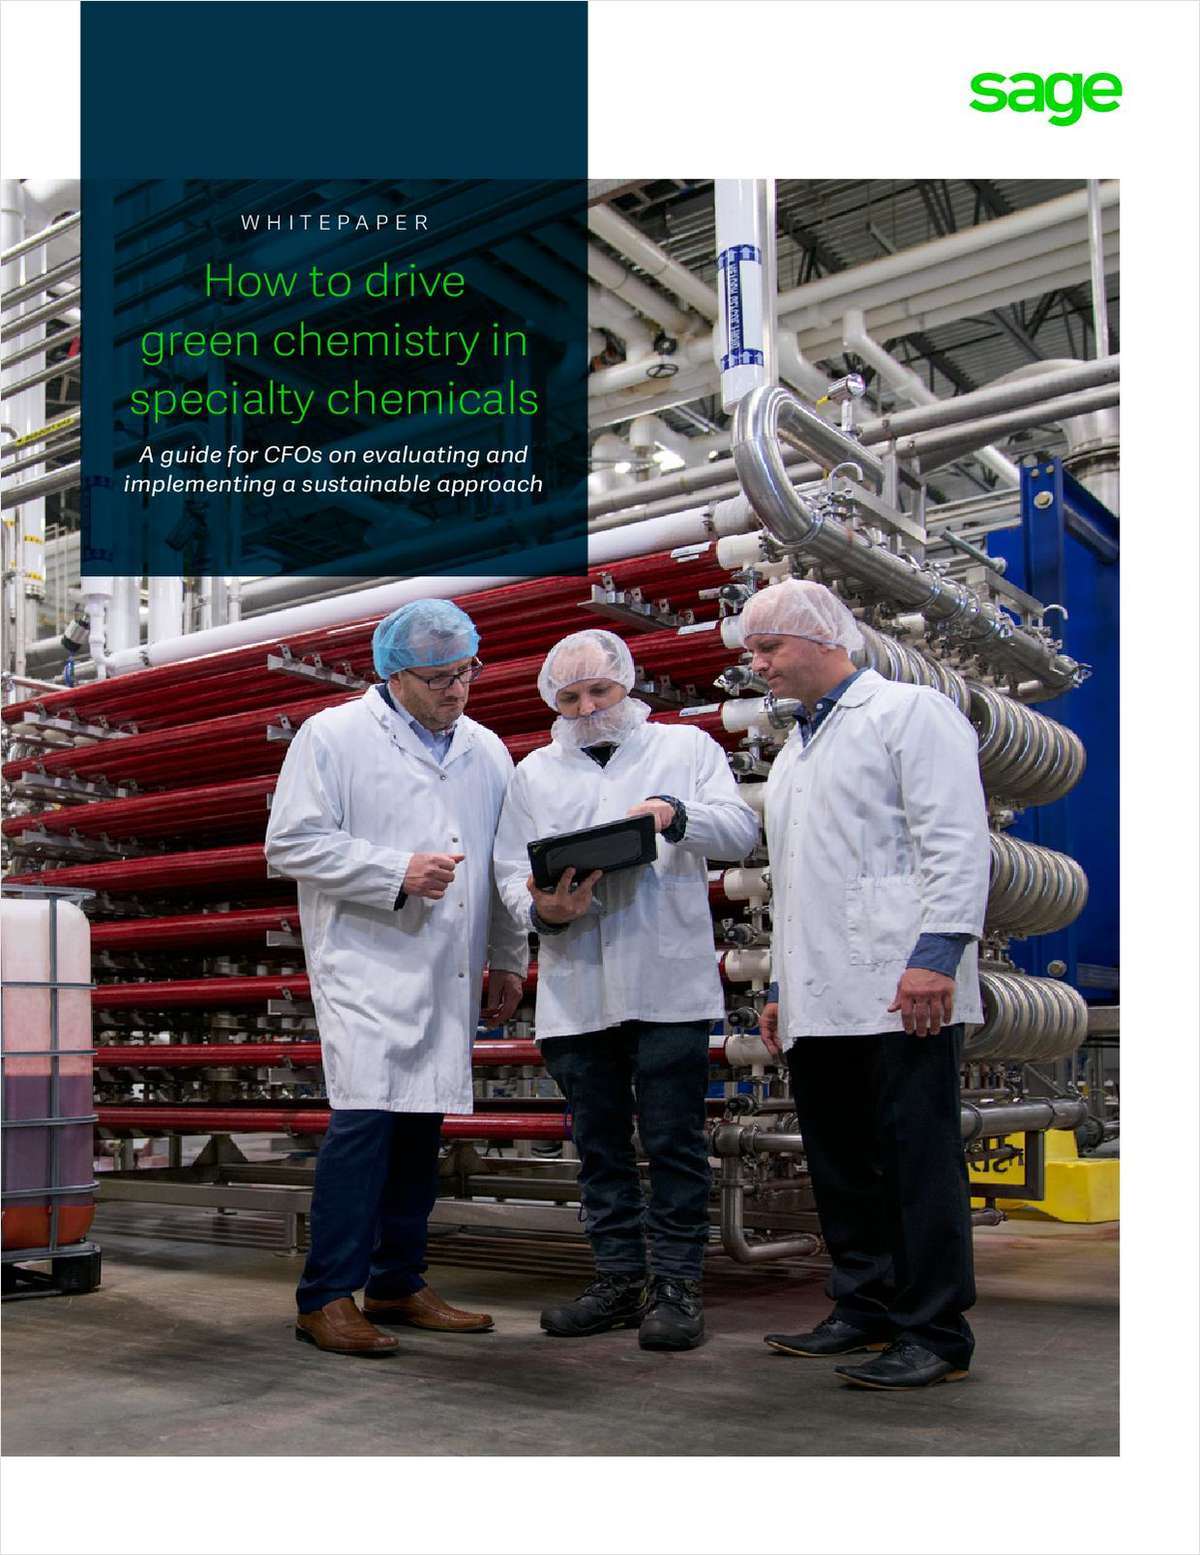 The Best Ways to Drive Green Chemistry in Specialty Chemicals